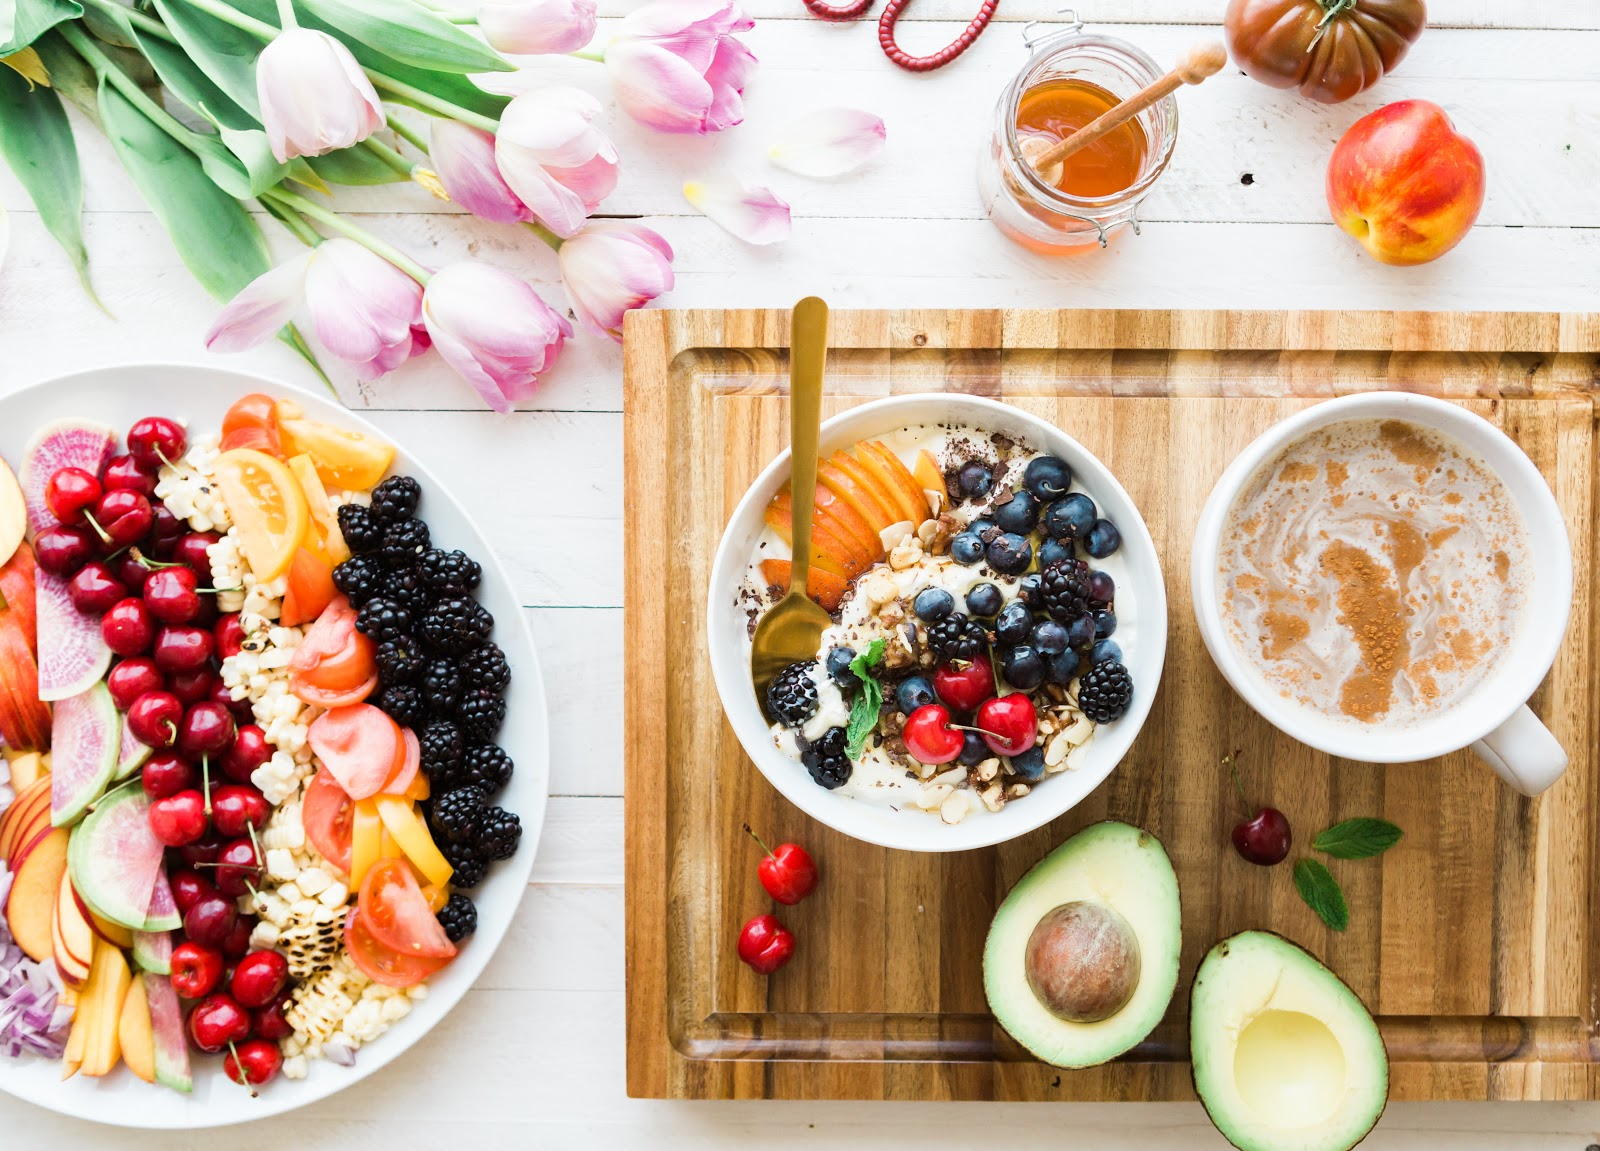 Top down view of an assortment of healthy foods on a cutting board and in a bowl.